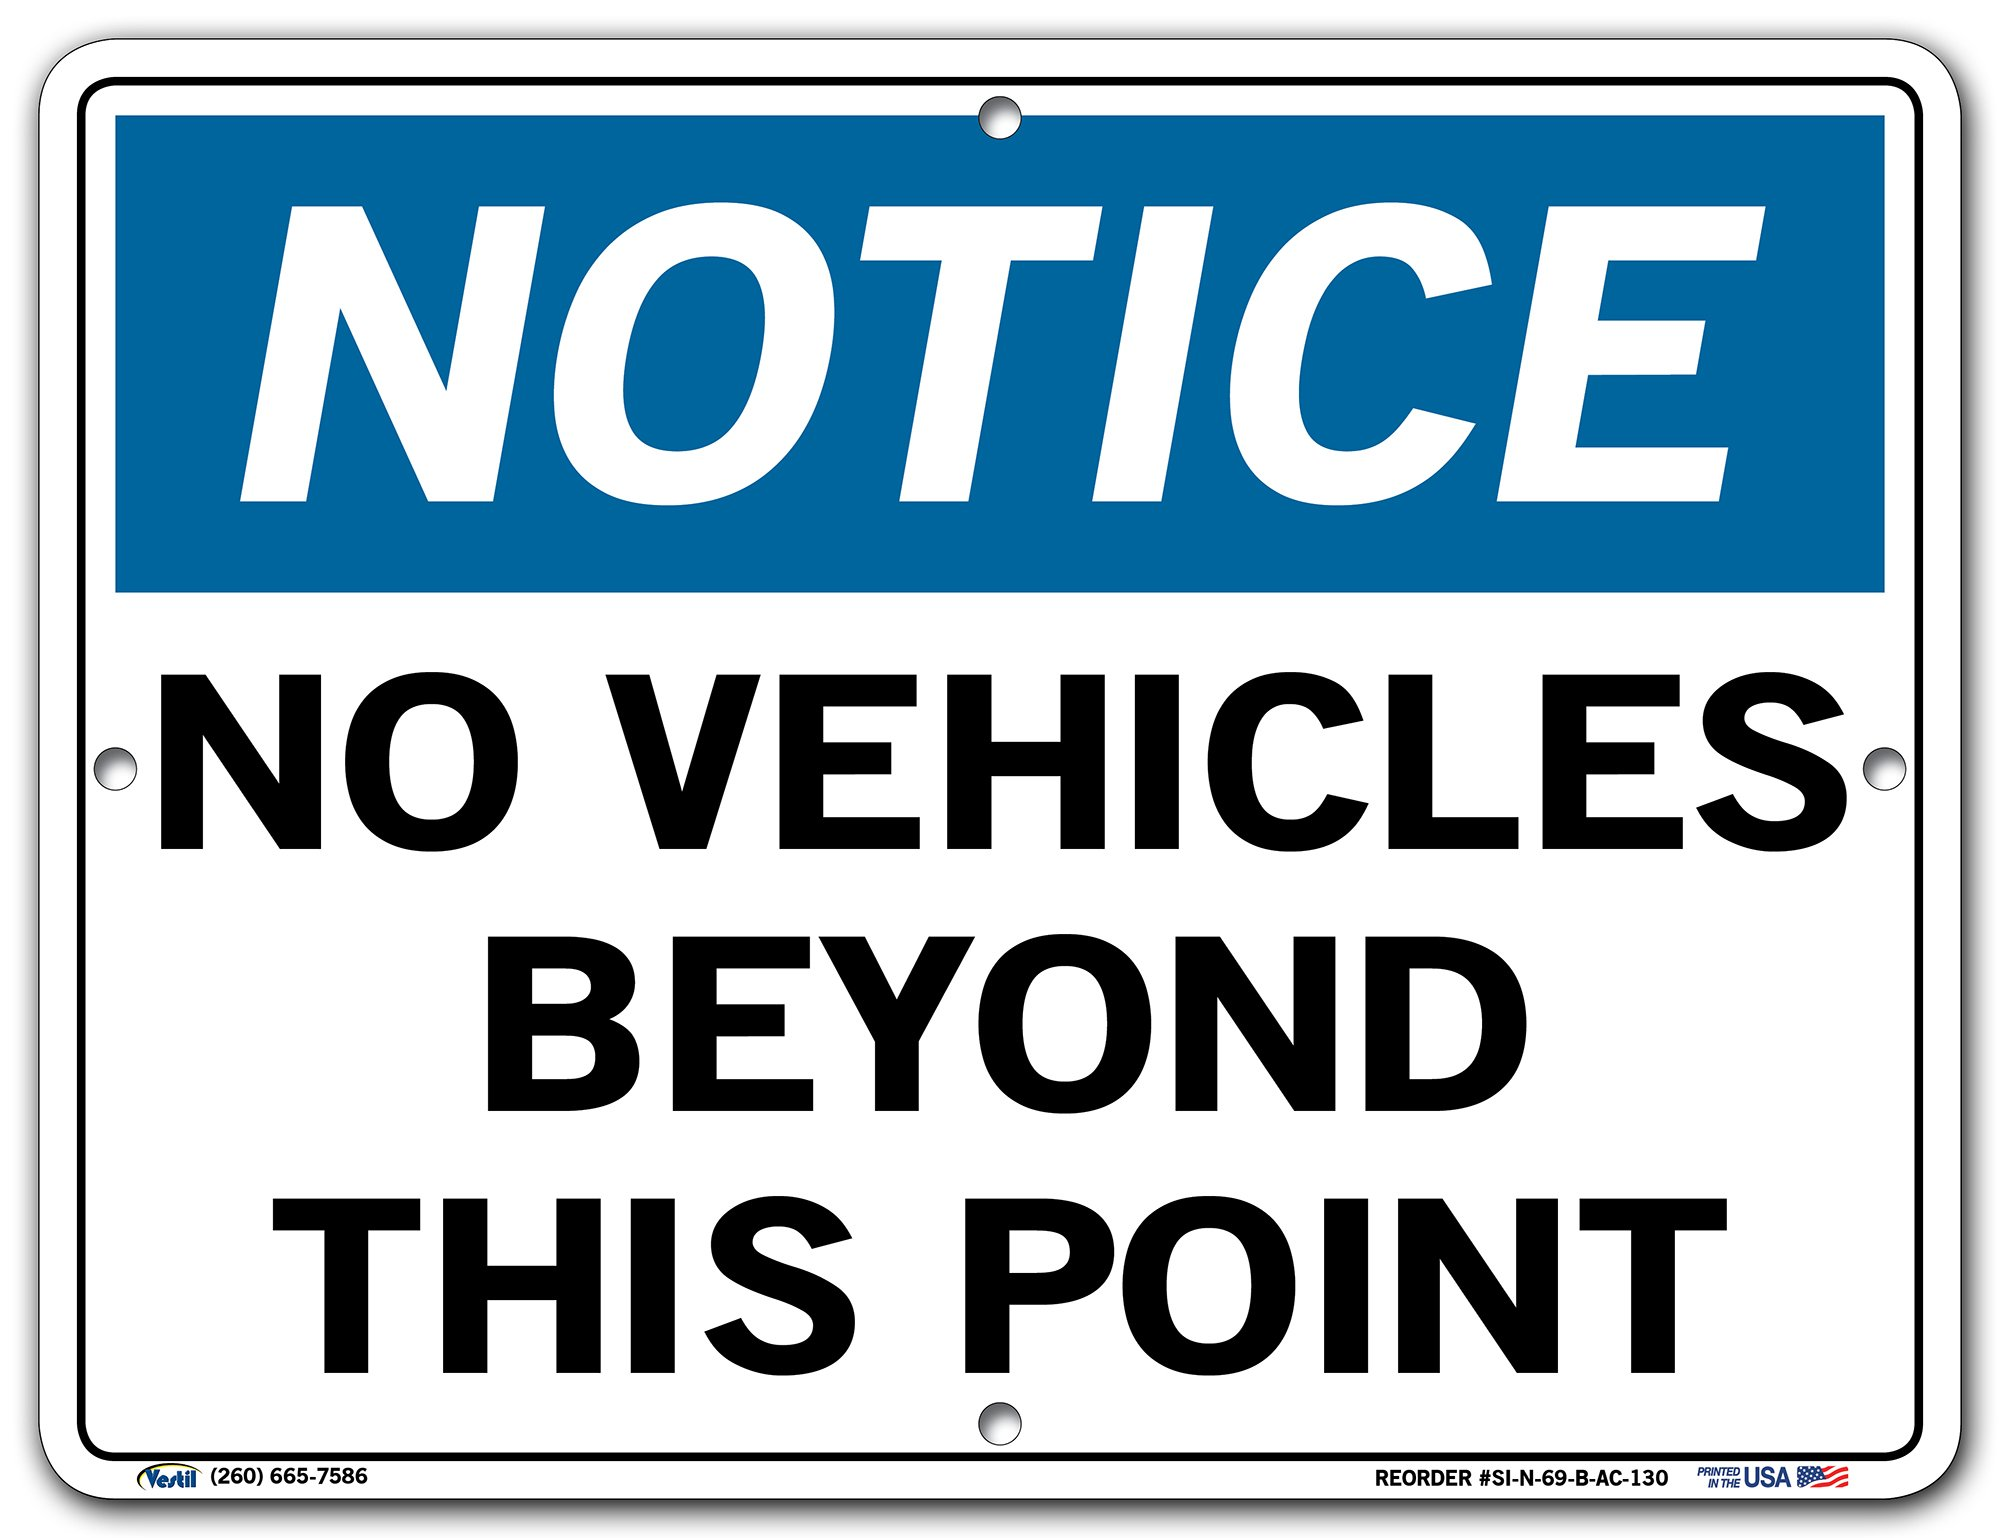 Vestil SI-N-69-B-AC-130 Notice Sign Aluminum Composite .130'' Overall Size  No Vehicles Beyond This Point , 9.5'' Height, 12.5'' Wide, 0.13'' Length